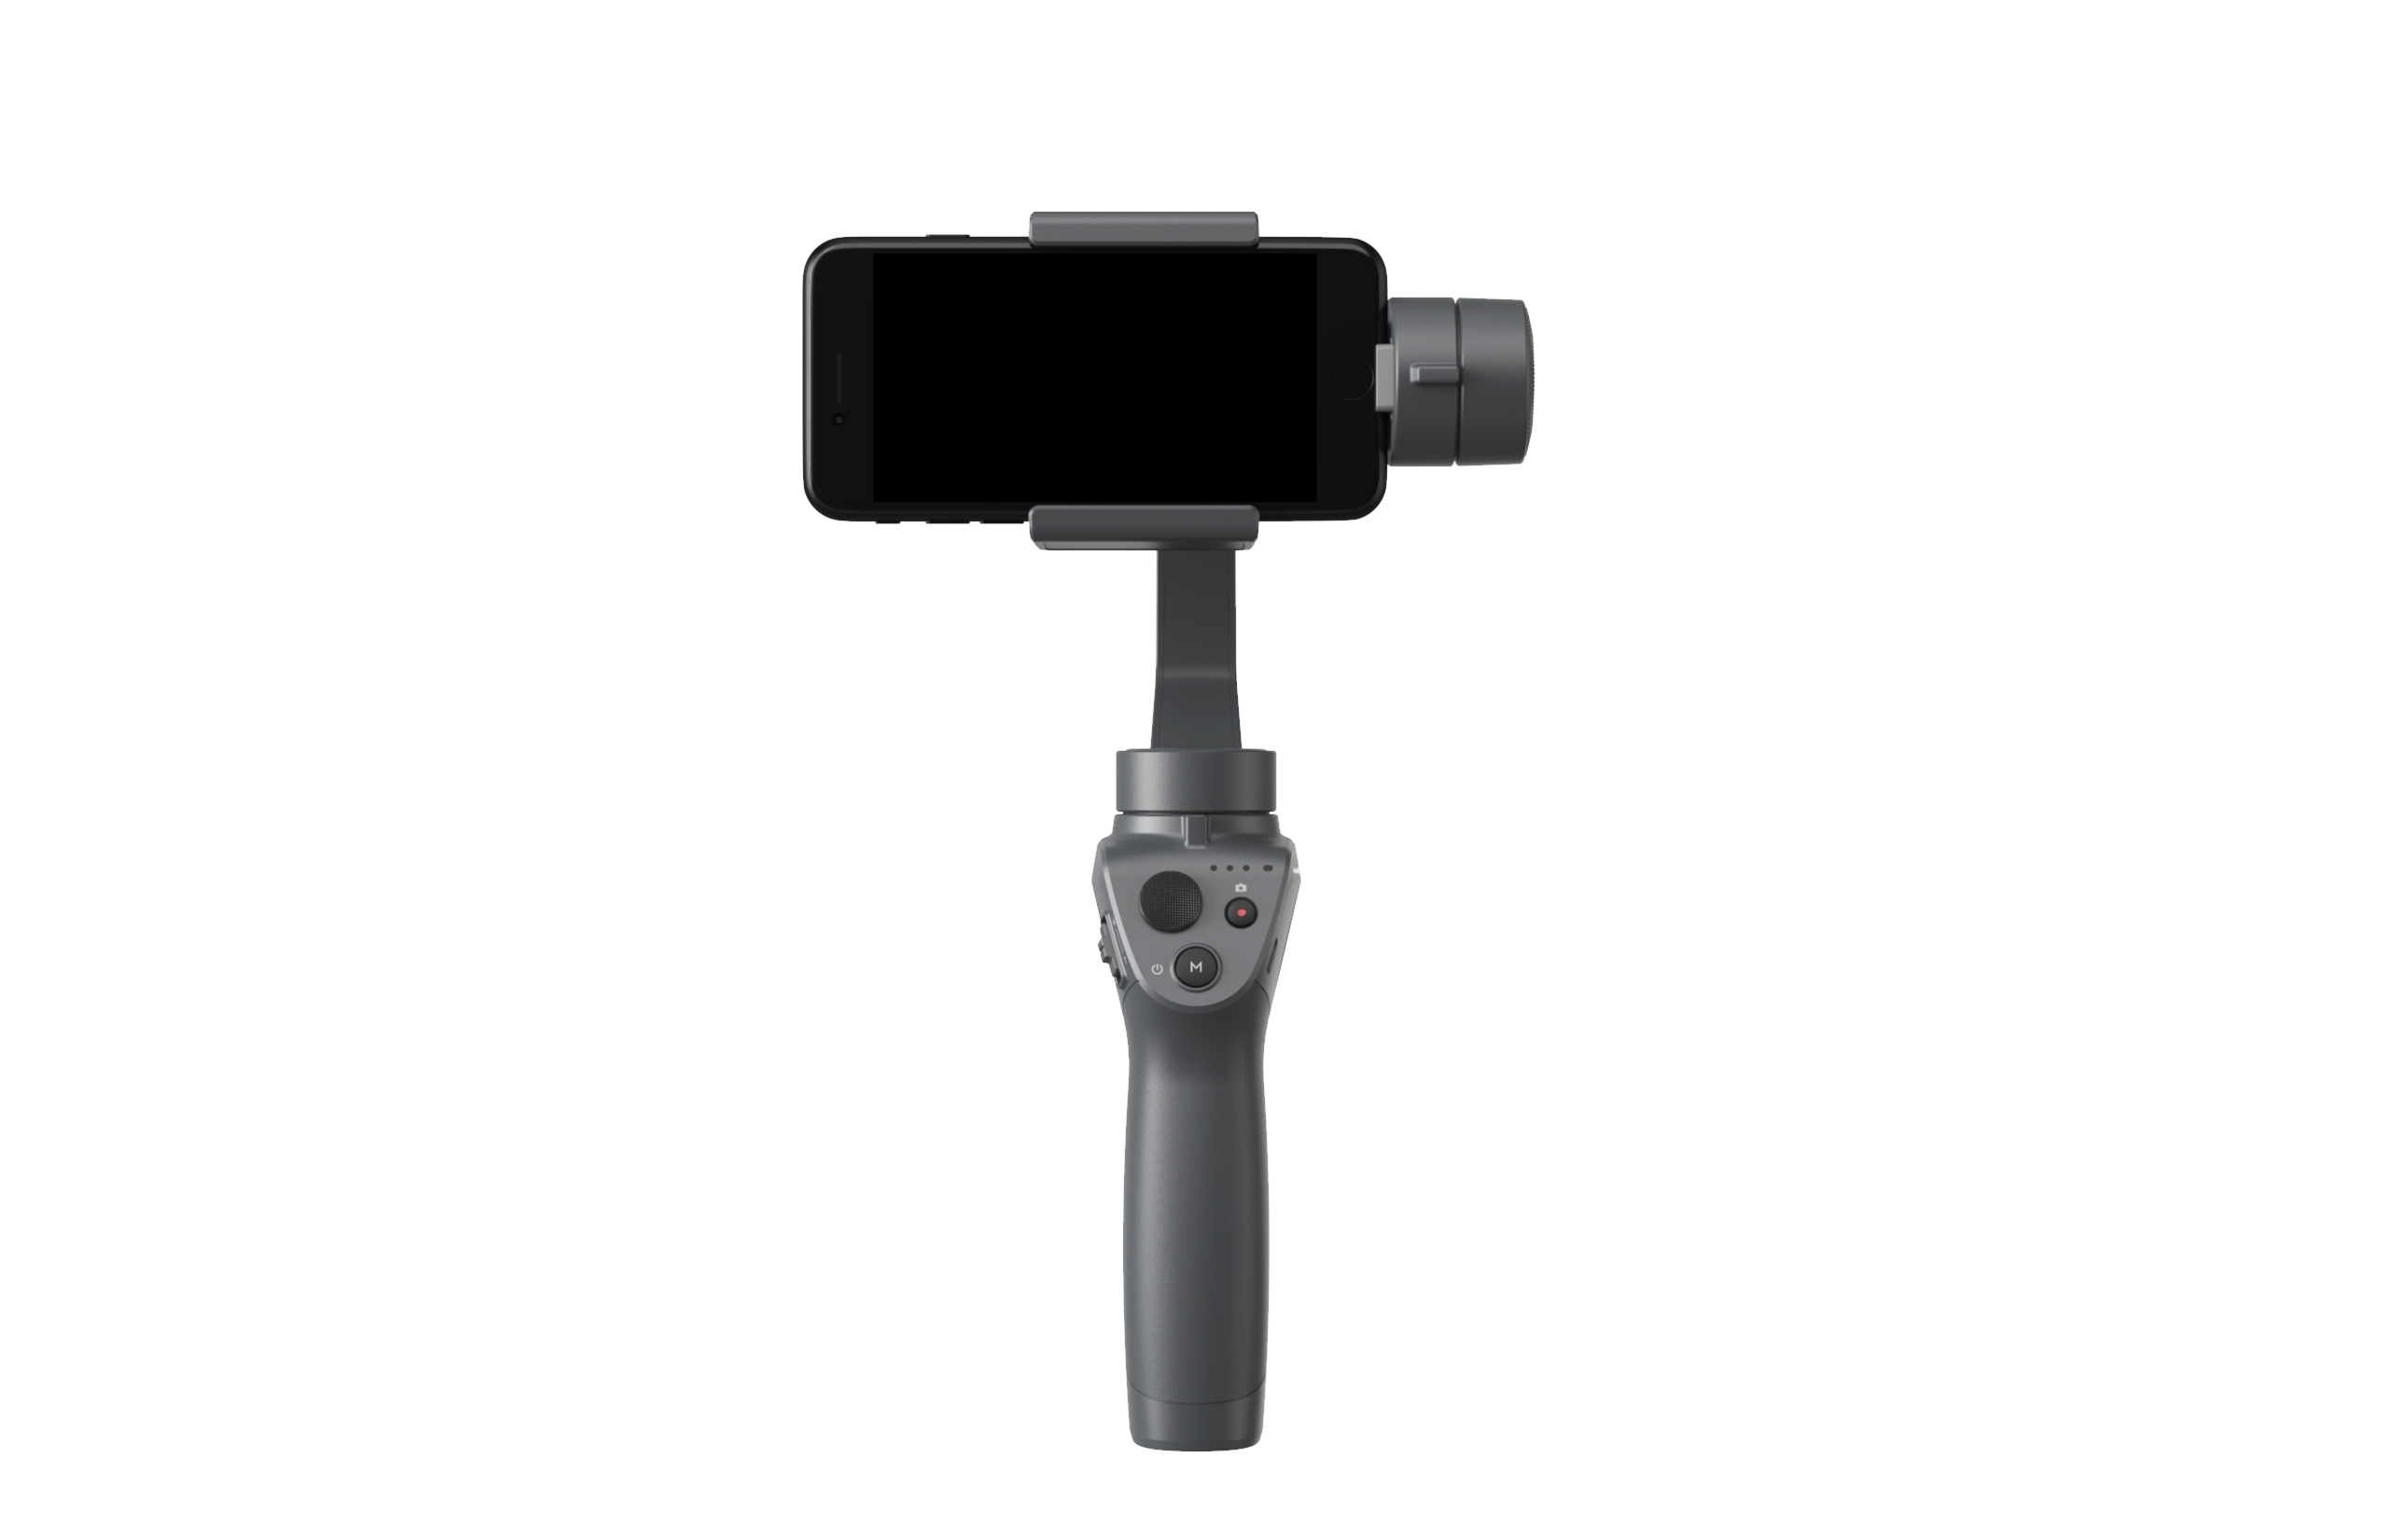 DJI's new Osmo Mobile smartphone stabilizer is way cheaper than the original